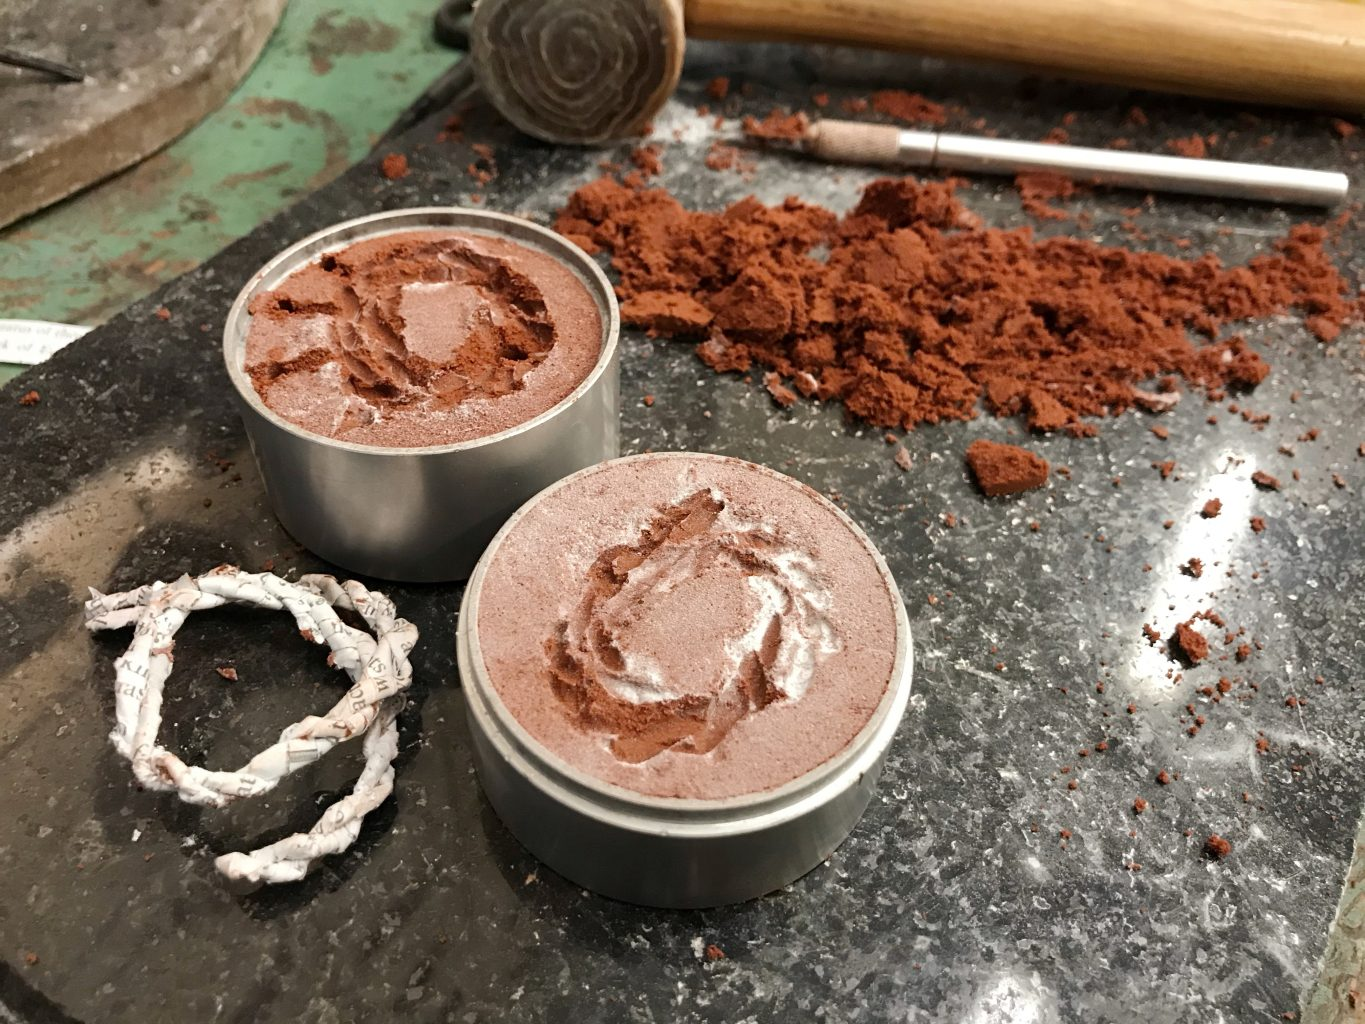 Two part metal tube filled with compacted, red sand, each with an impression of a piece of handmade paper rope, ready to cast in metal